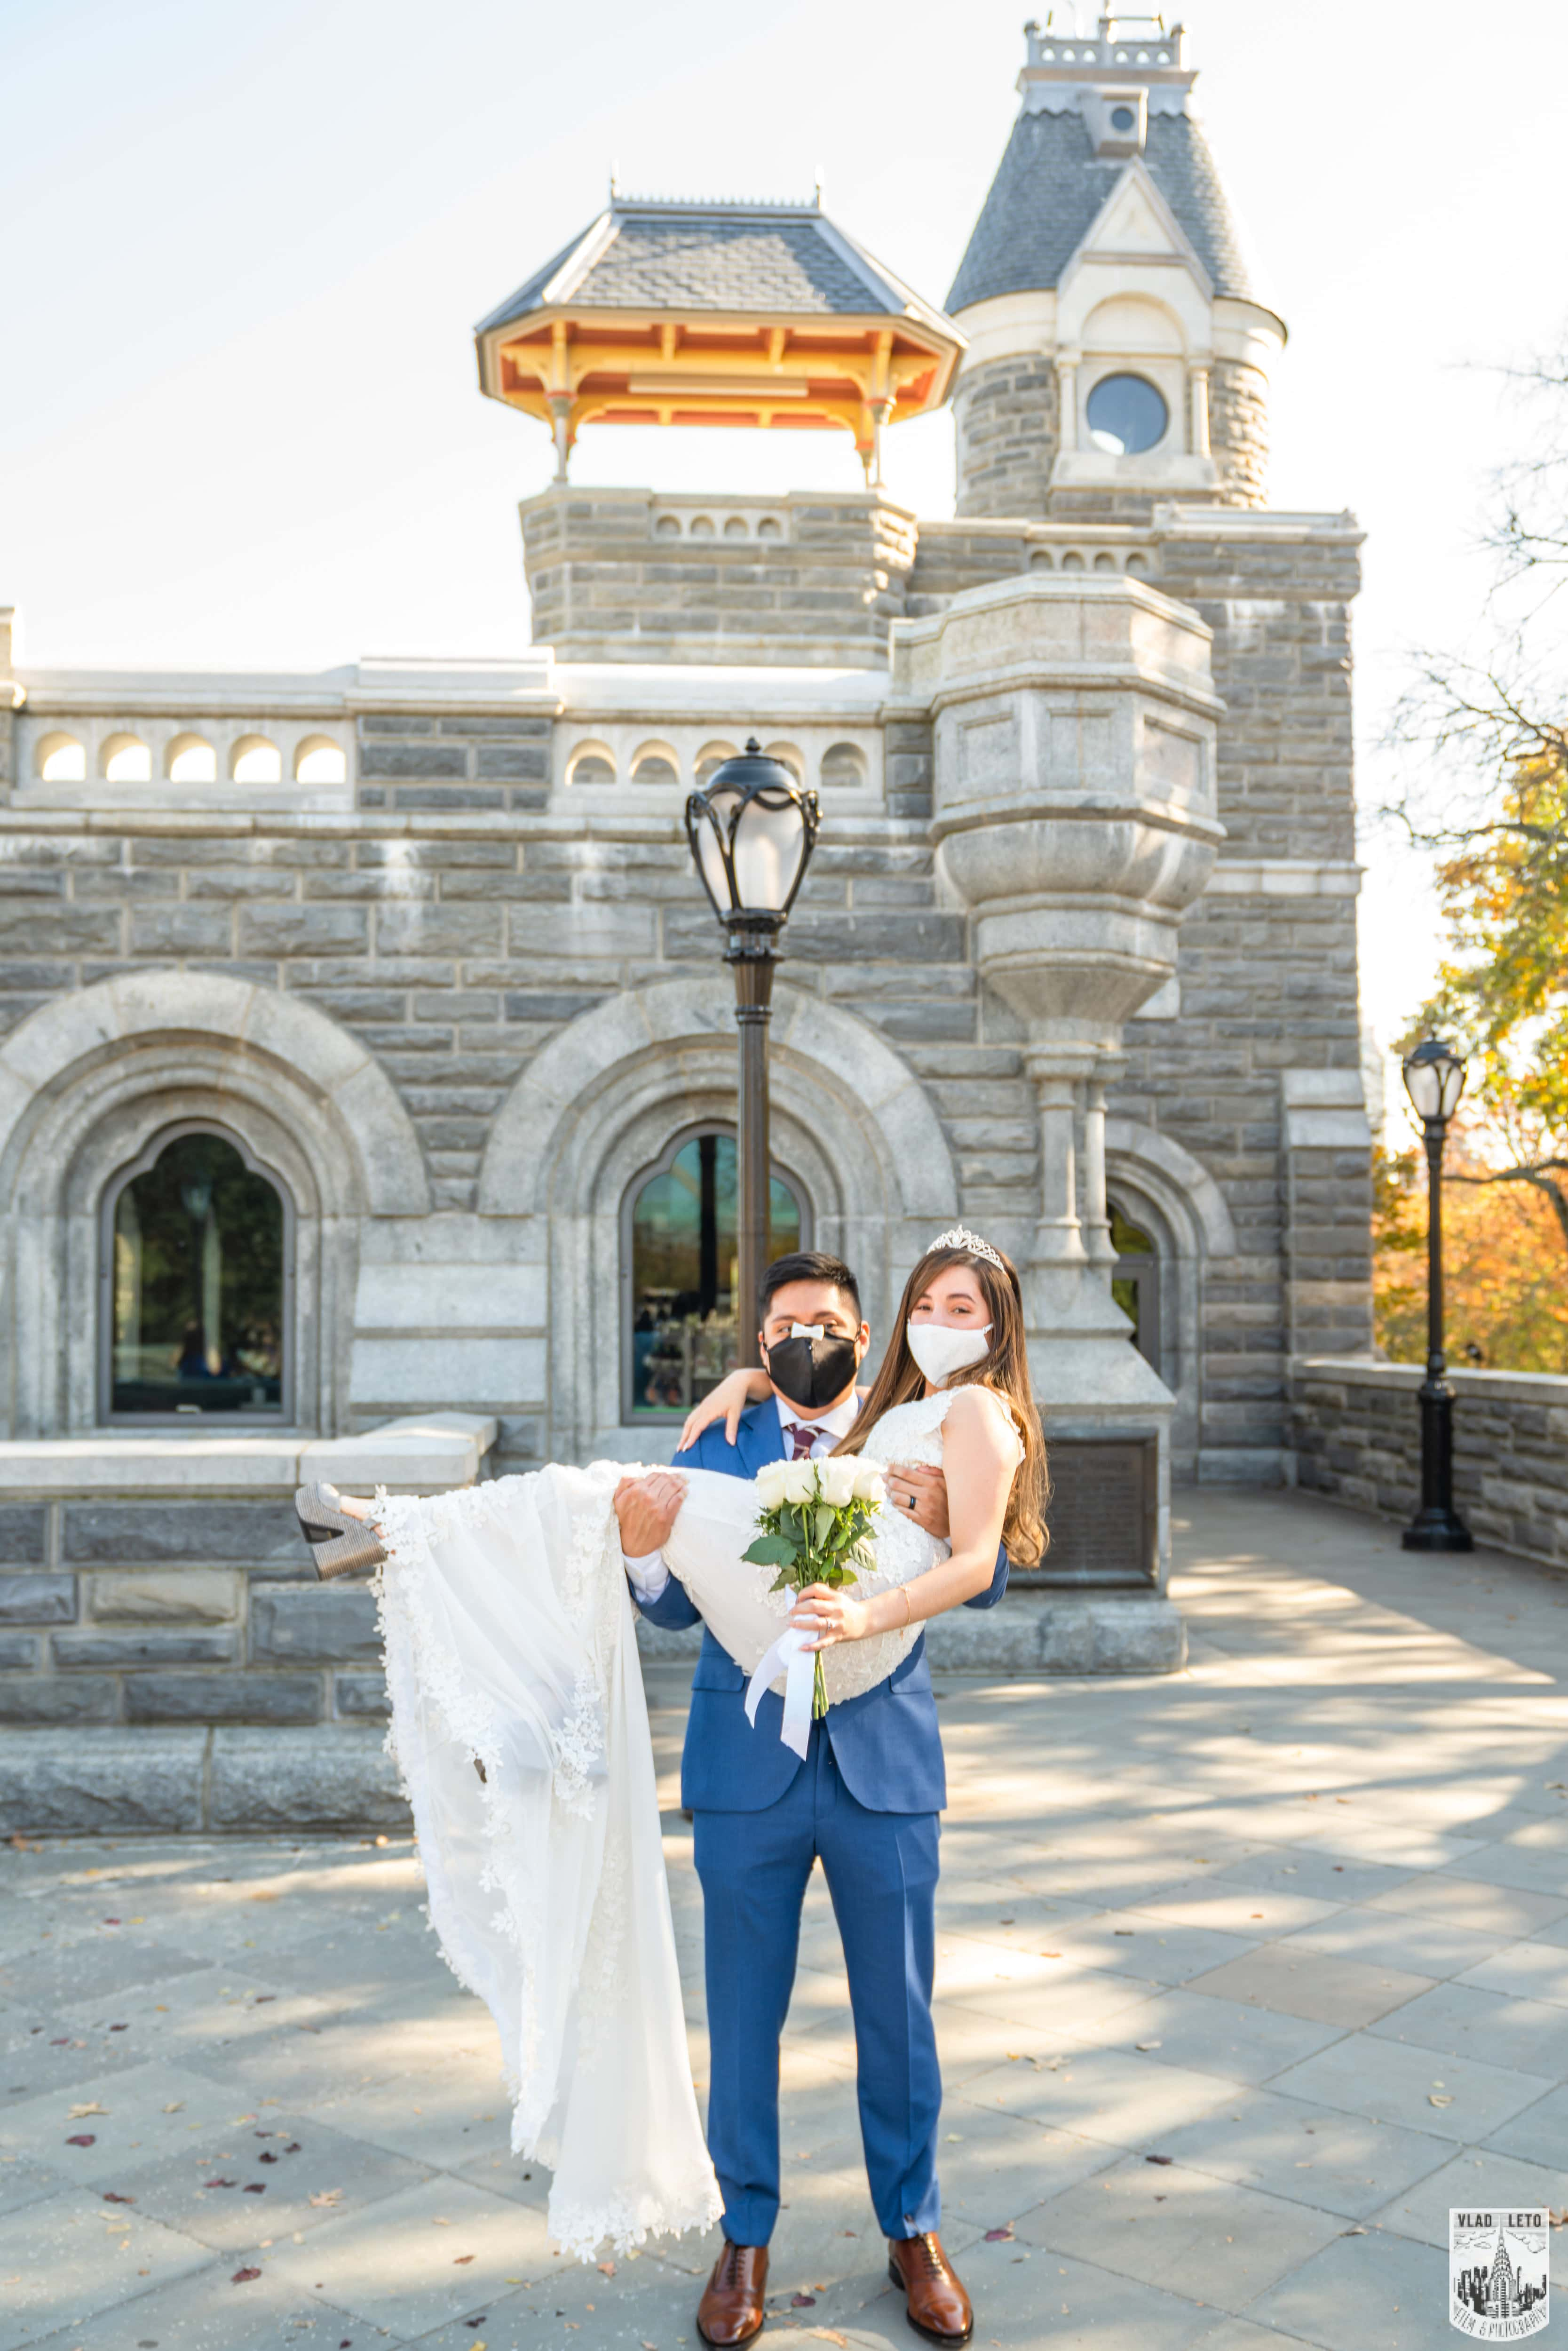 Photo 17 Francisco and Maria wedding ceremony at the Belvedere Castle